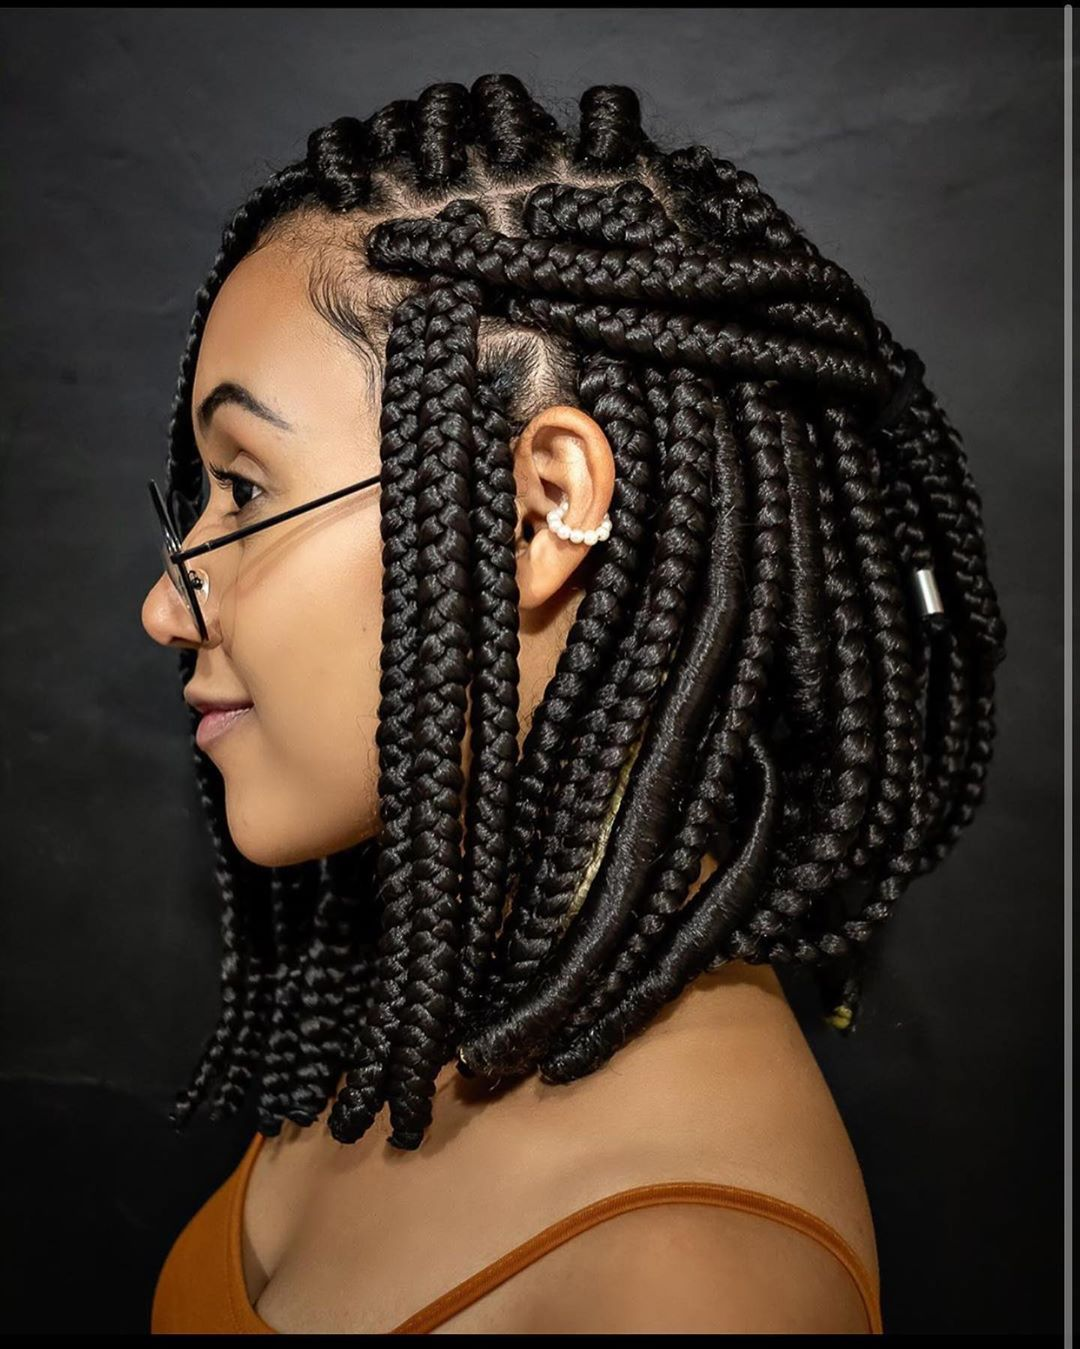 Braid Styles With Weave Trending Pictures Of Braided Hairstyles With Weavelatest Ankara Styles 2020 And Information Guide